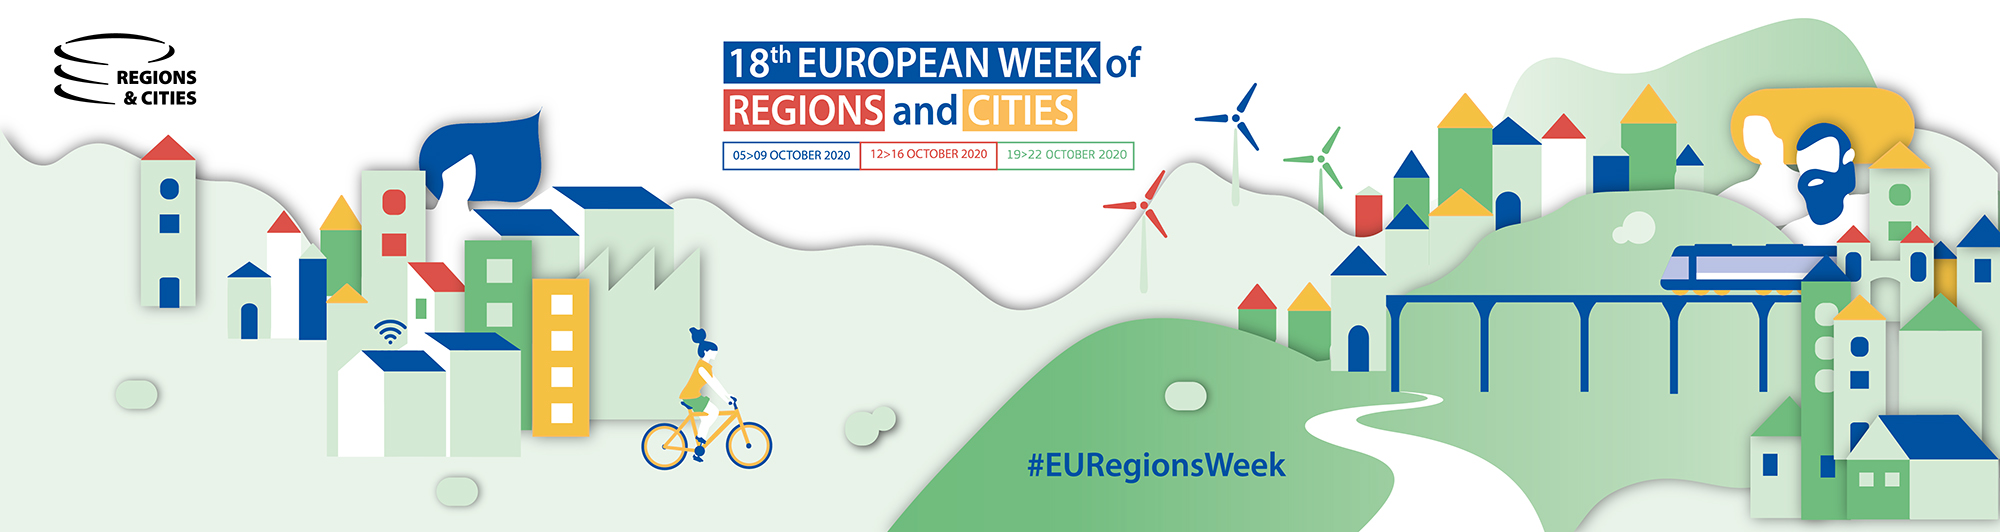 Announcement of the 18th European Week of Regions and Cities